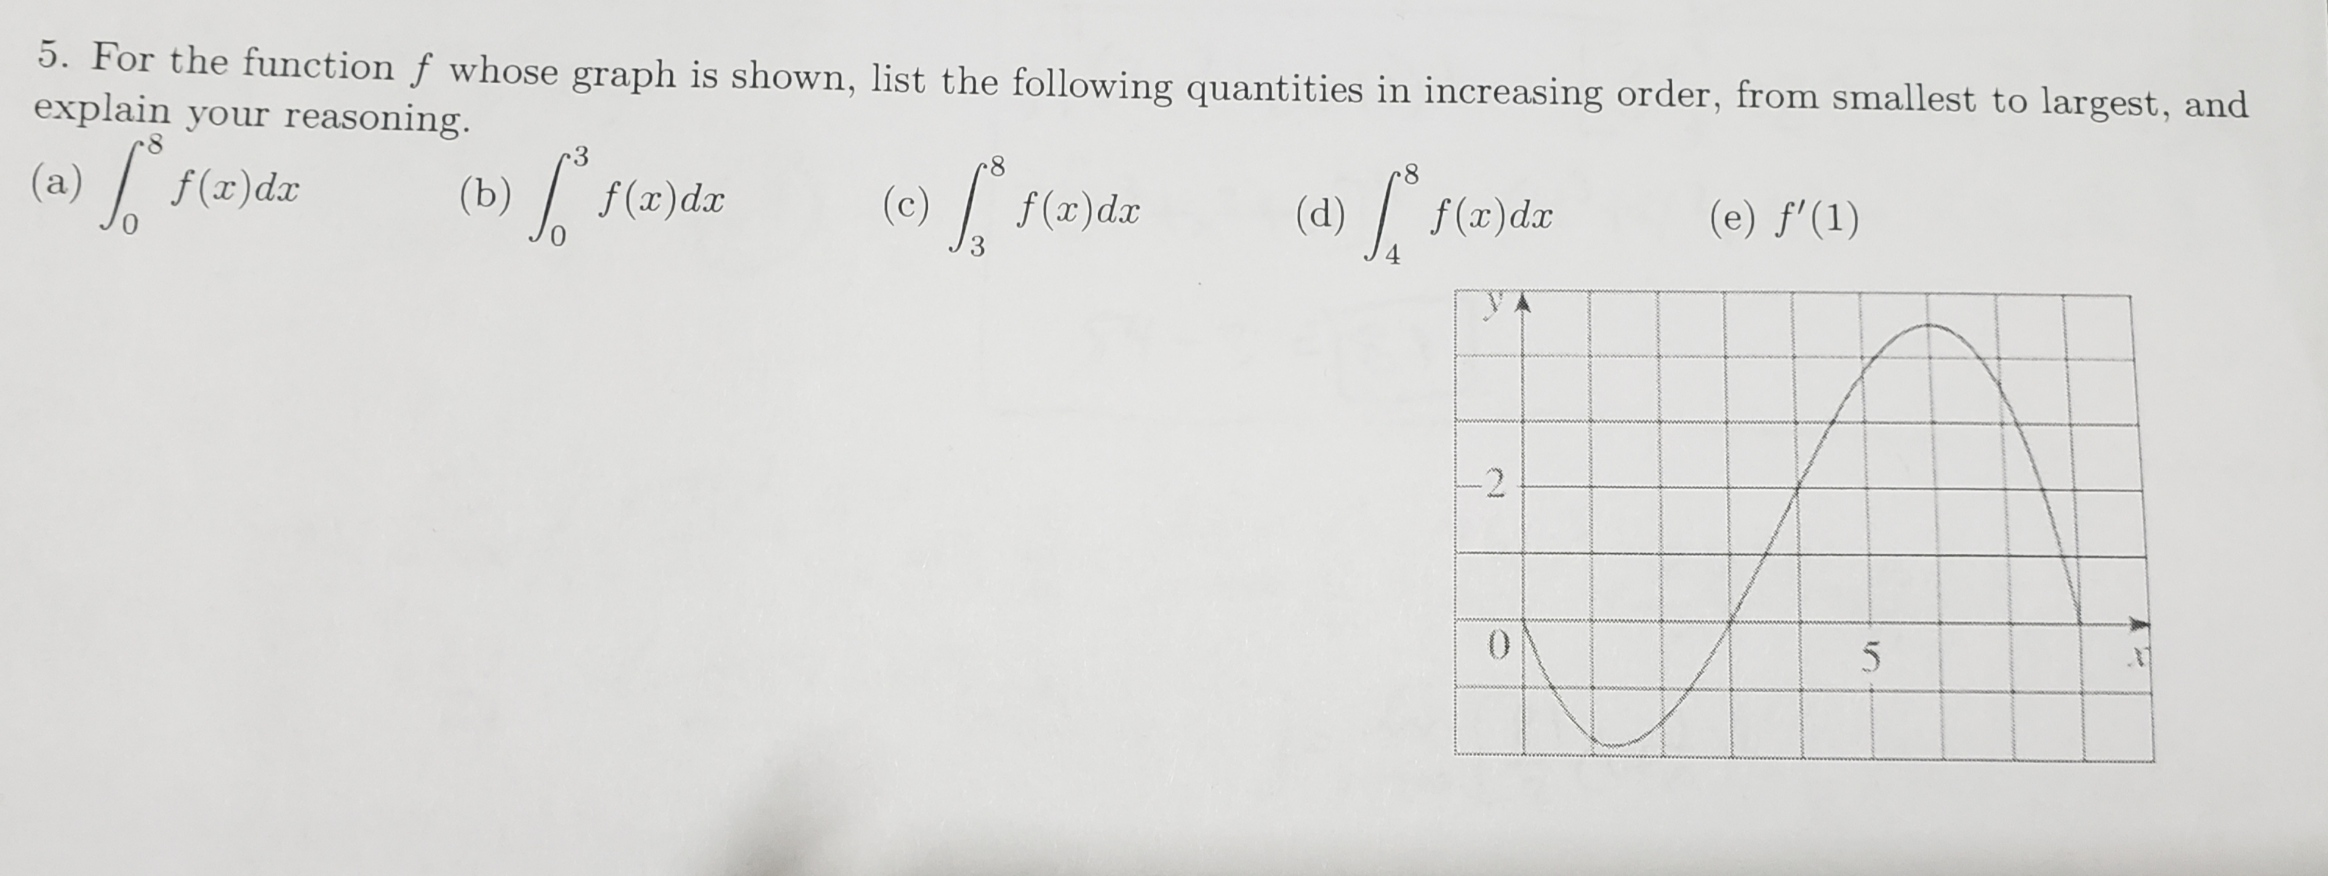 5. For the function f whose graph is shown, list the following quantities in increasing order, from smallest to largest, and explain your reasoning. 3 (a) f(x)da 8 (b)f(r)da (e)f(r)da (d)f(x)da (e) f'(1) -2 0 5